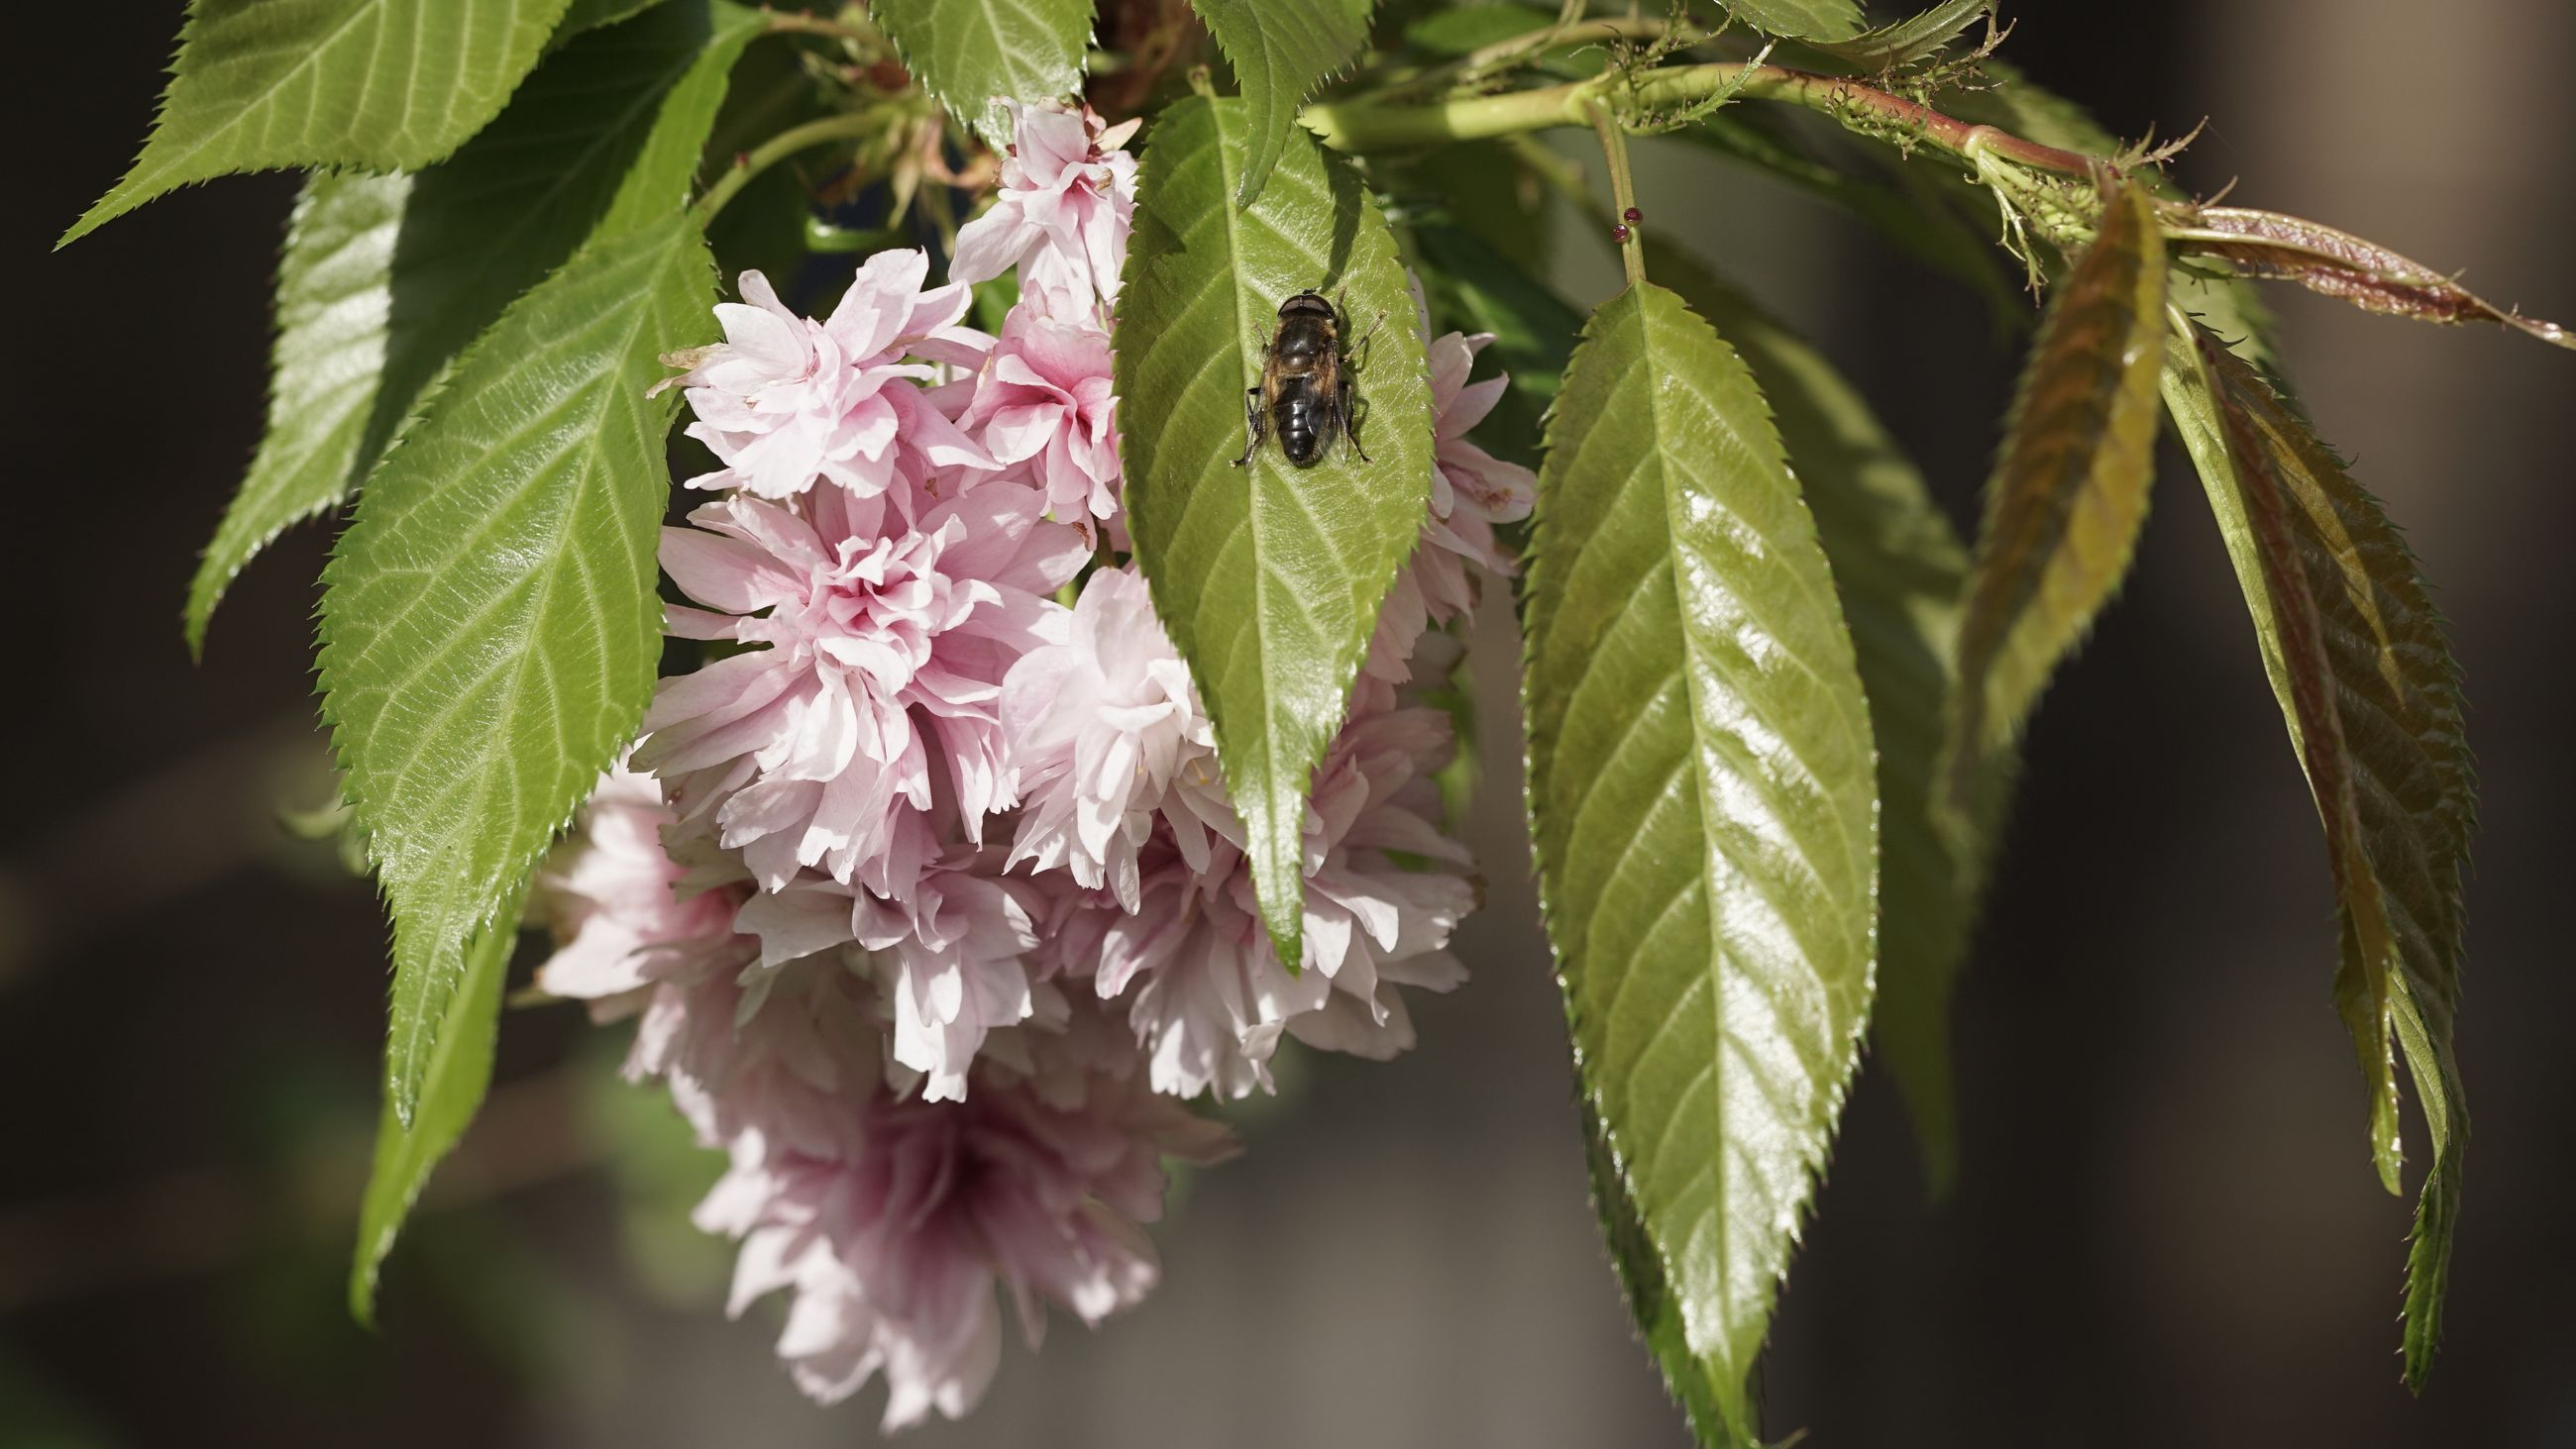 CLOSE-UP OF INSECT ON PINK FLOWERS